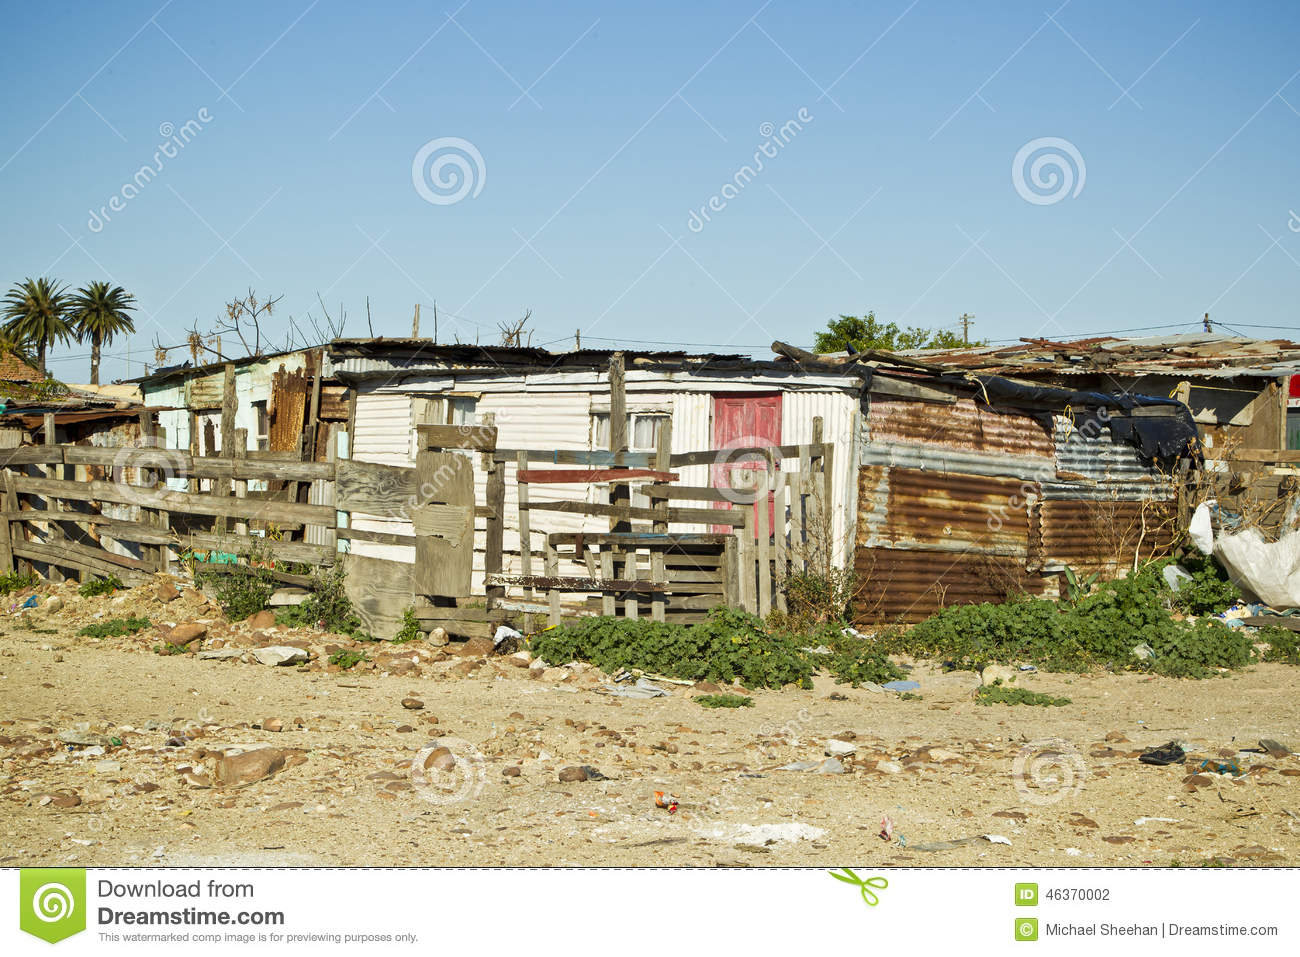 Shanty Town Corrugated Iron Houses Stock Photo.